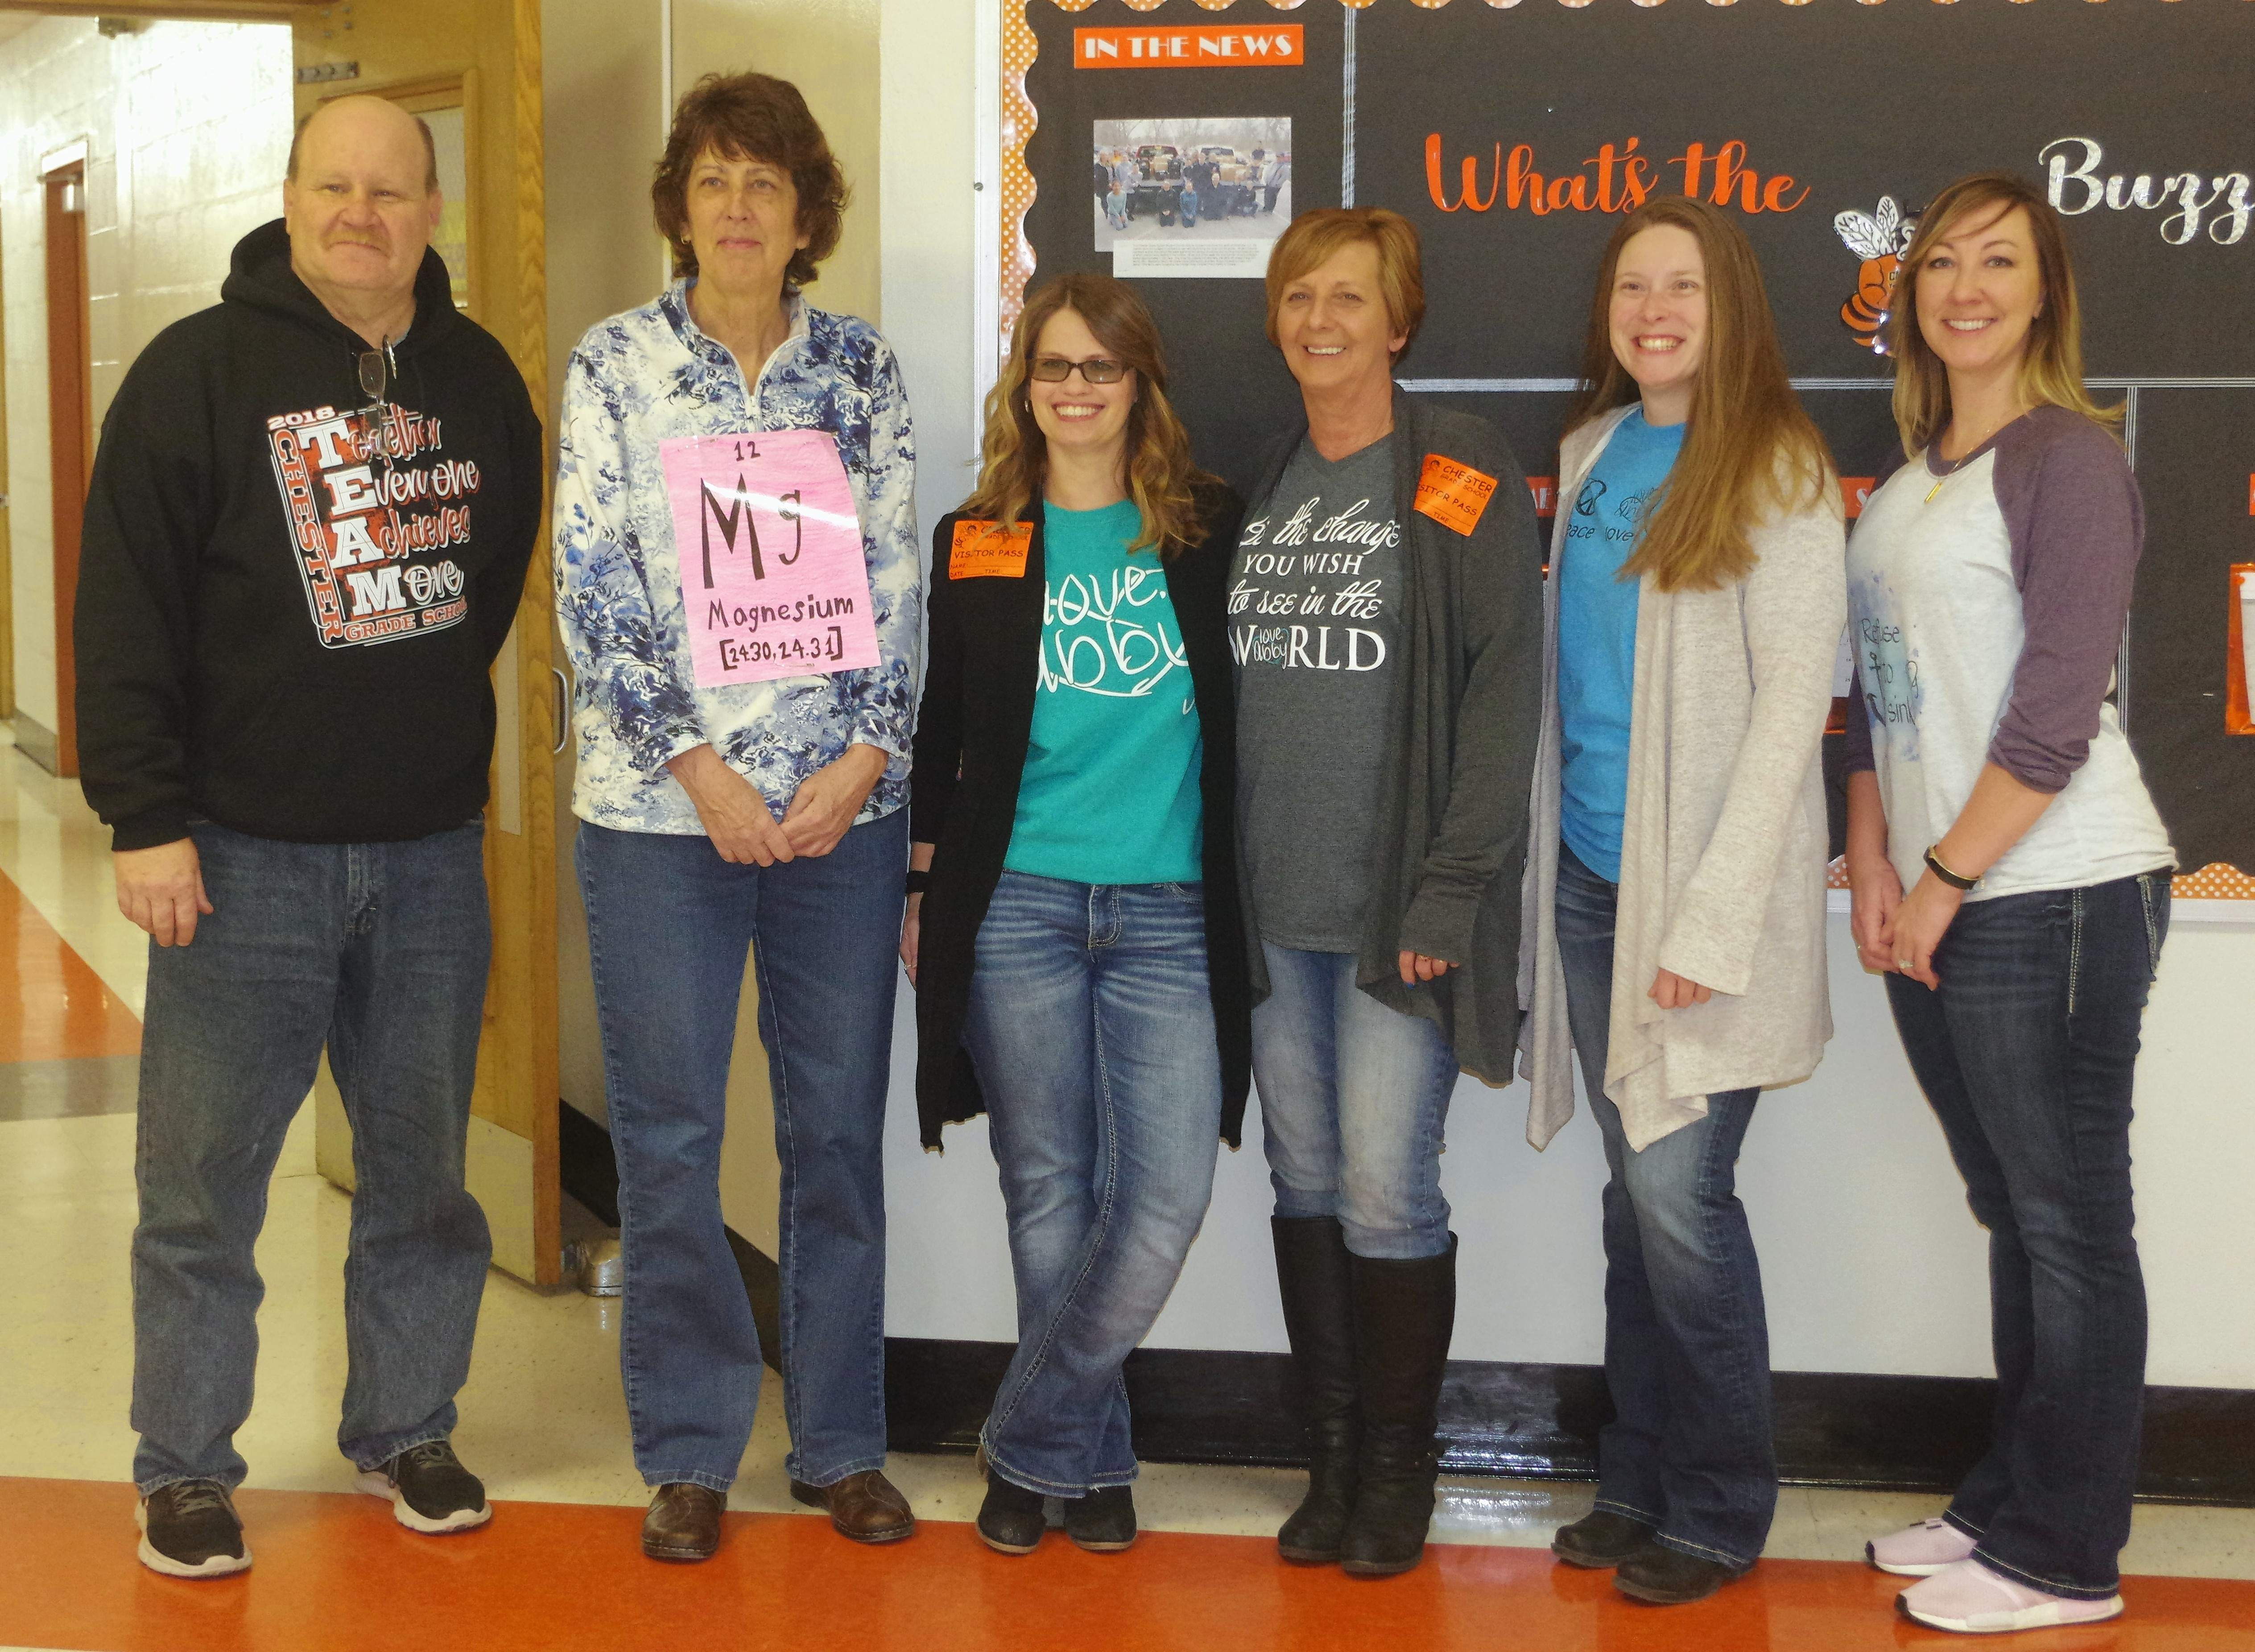 From left, Tim Lochhead, CGS principal; Joann Meyer; Terri Liefer, Abby's mother; and Kathy Baker, Dana Ernsting and Jessica Bland from the Love Abby staff.